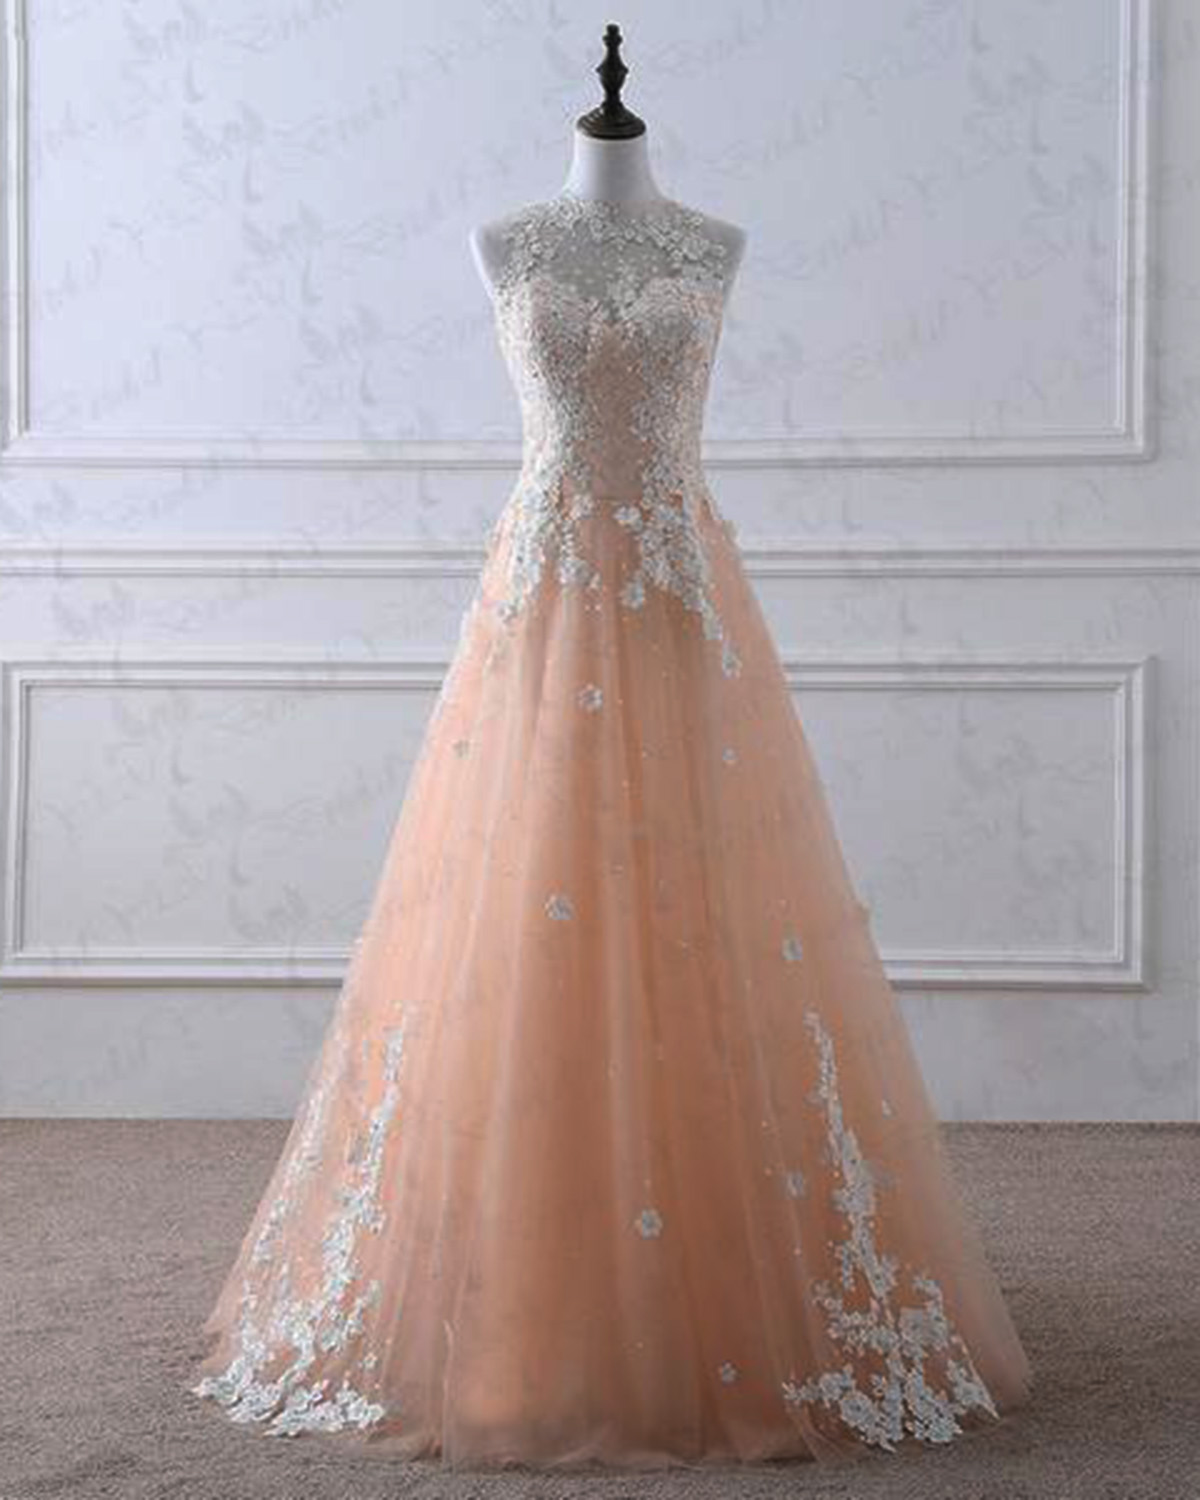 0a508fb508 Elegant champagne tulle O neck long formal prom dress with white lace  appliqués